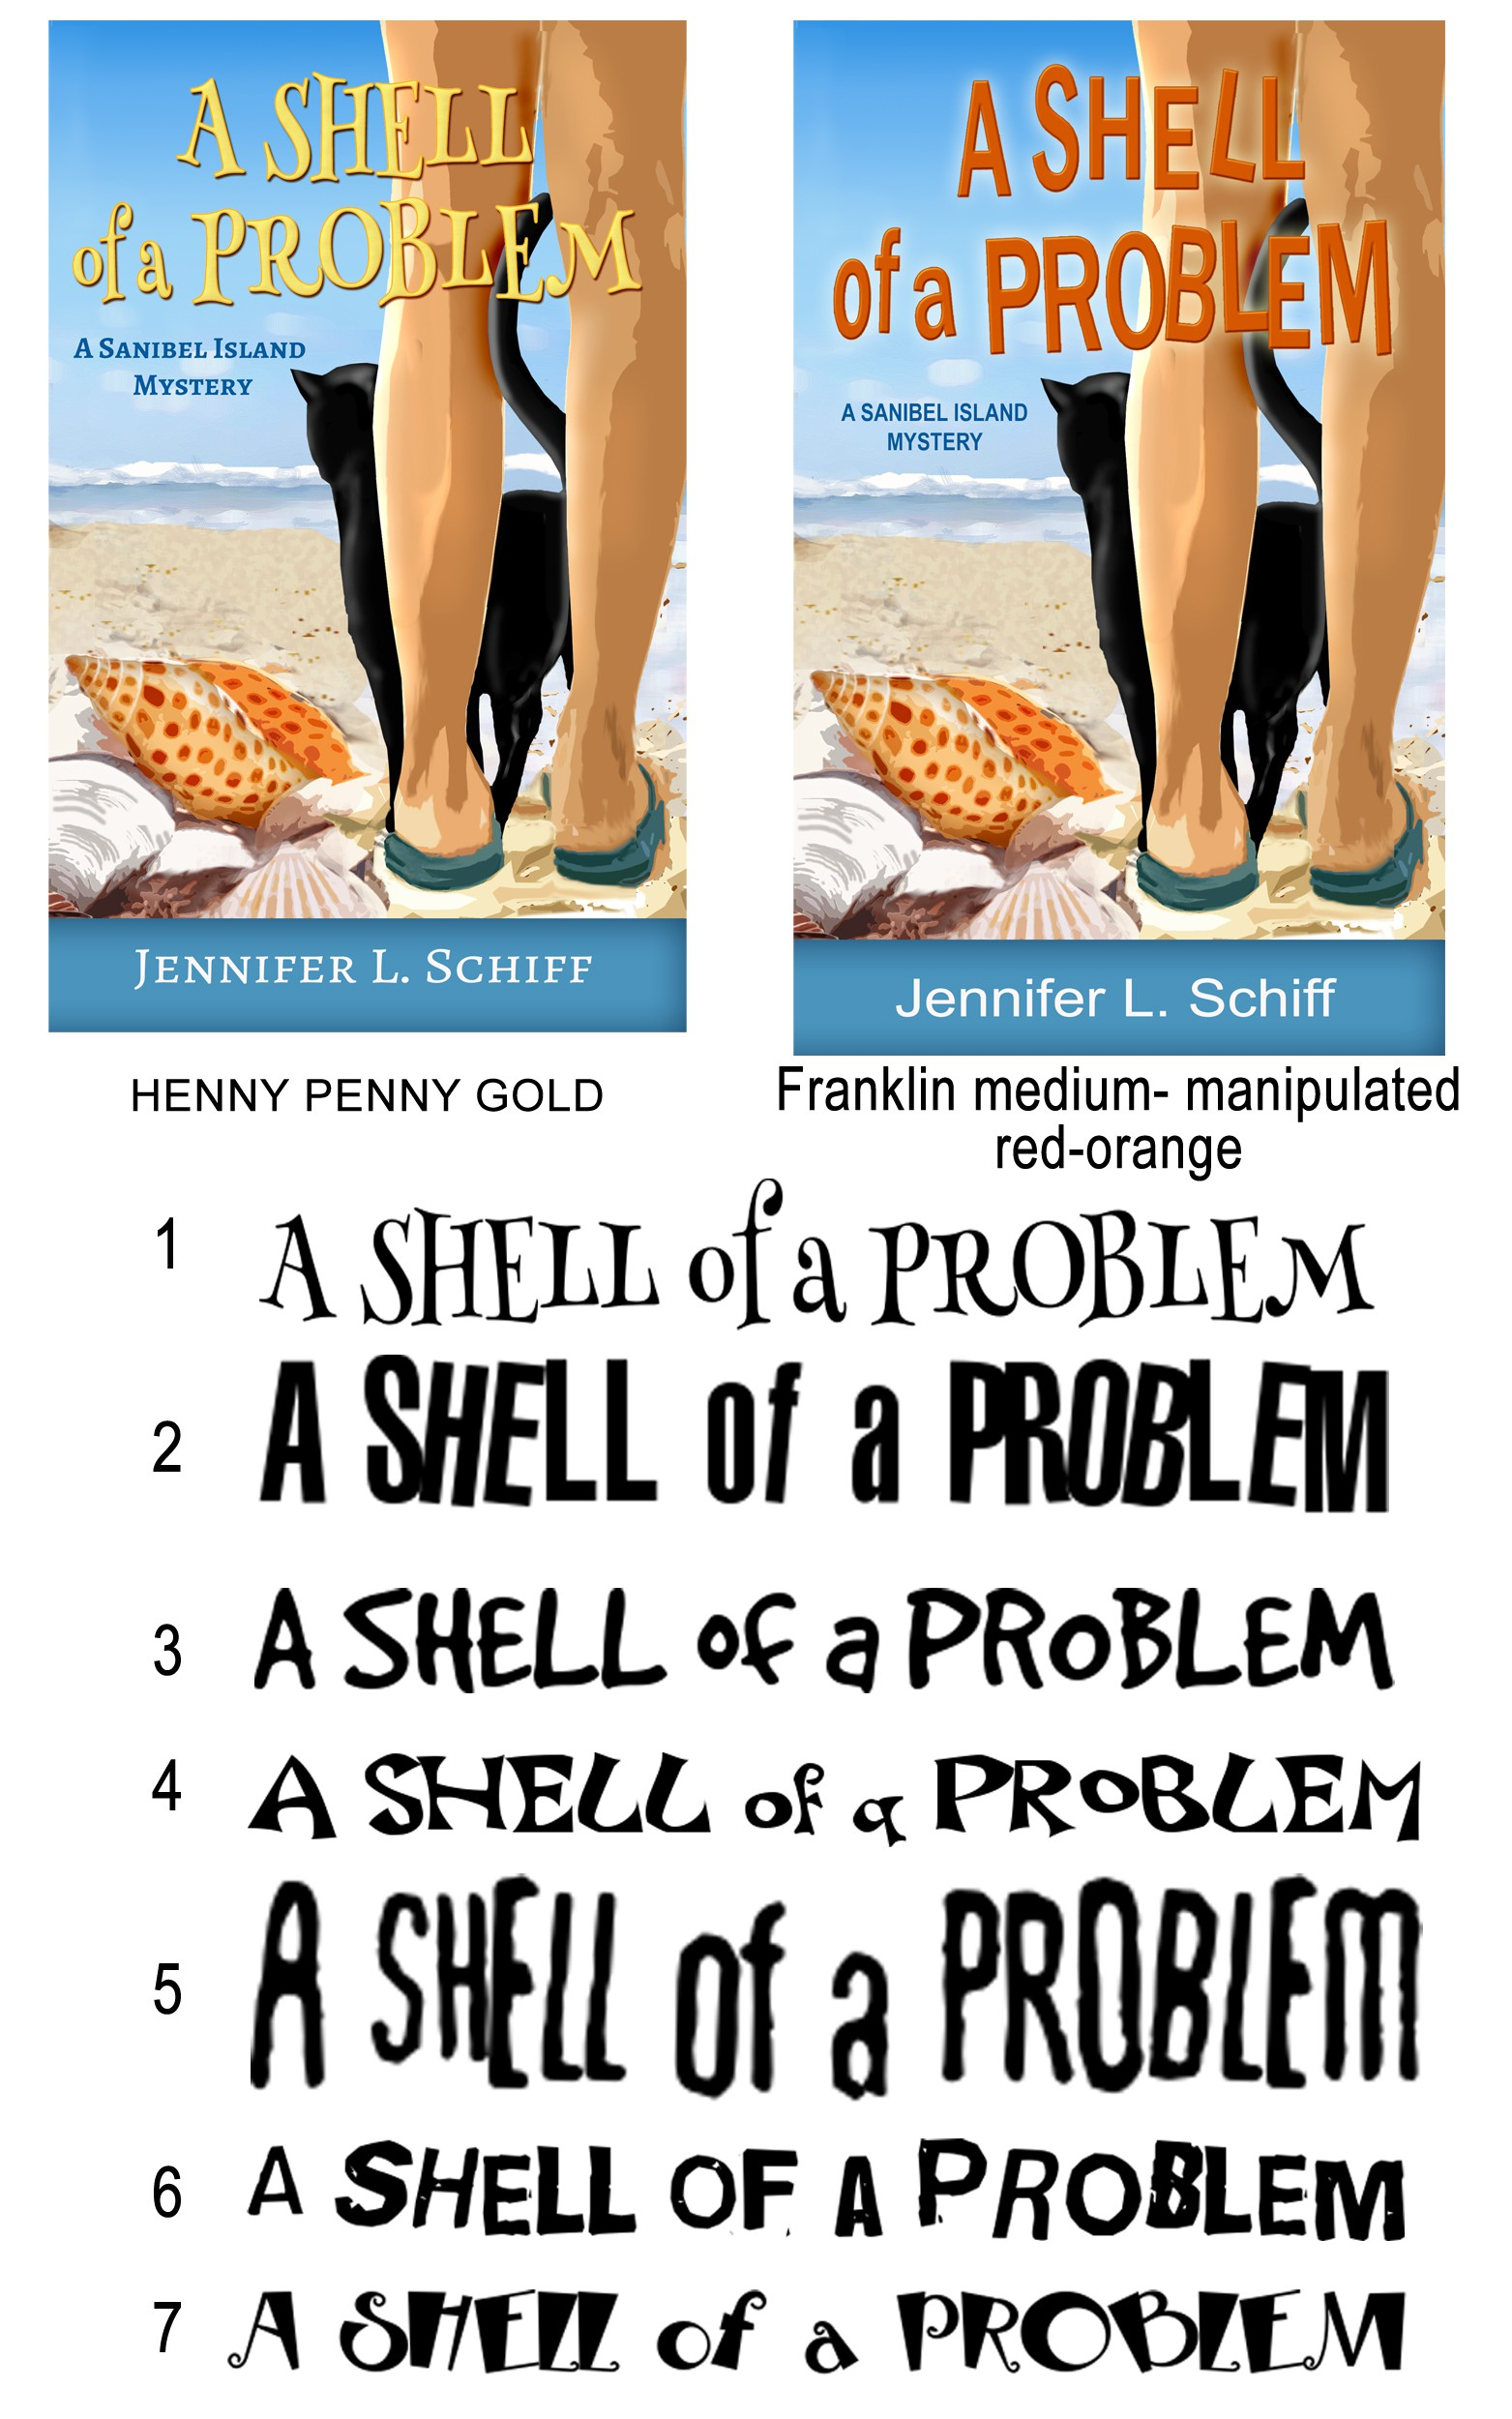 Beach-themed cozy mystery cover design (paperback + ebook)